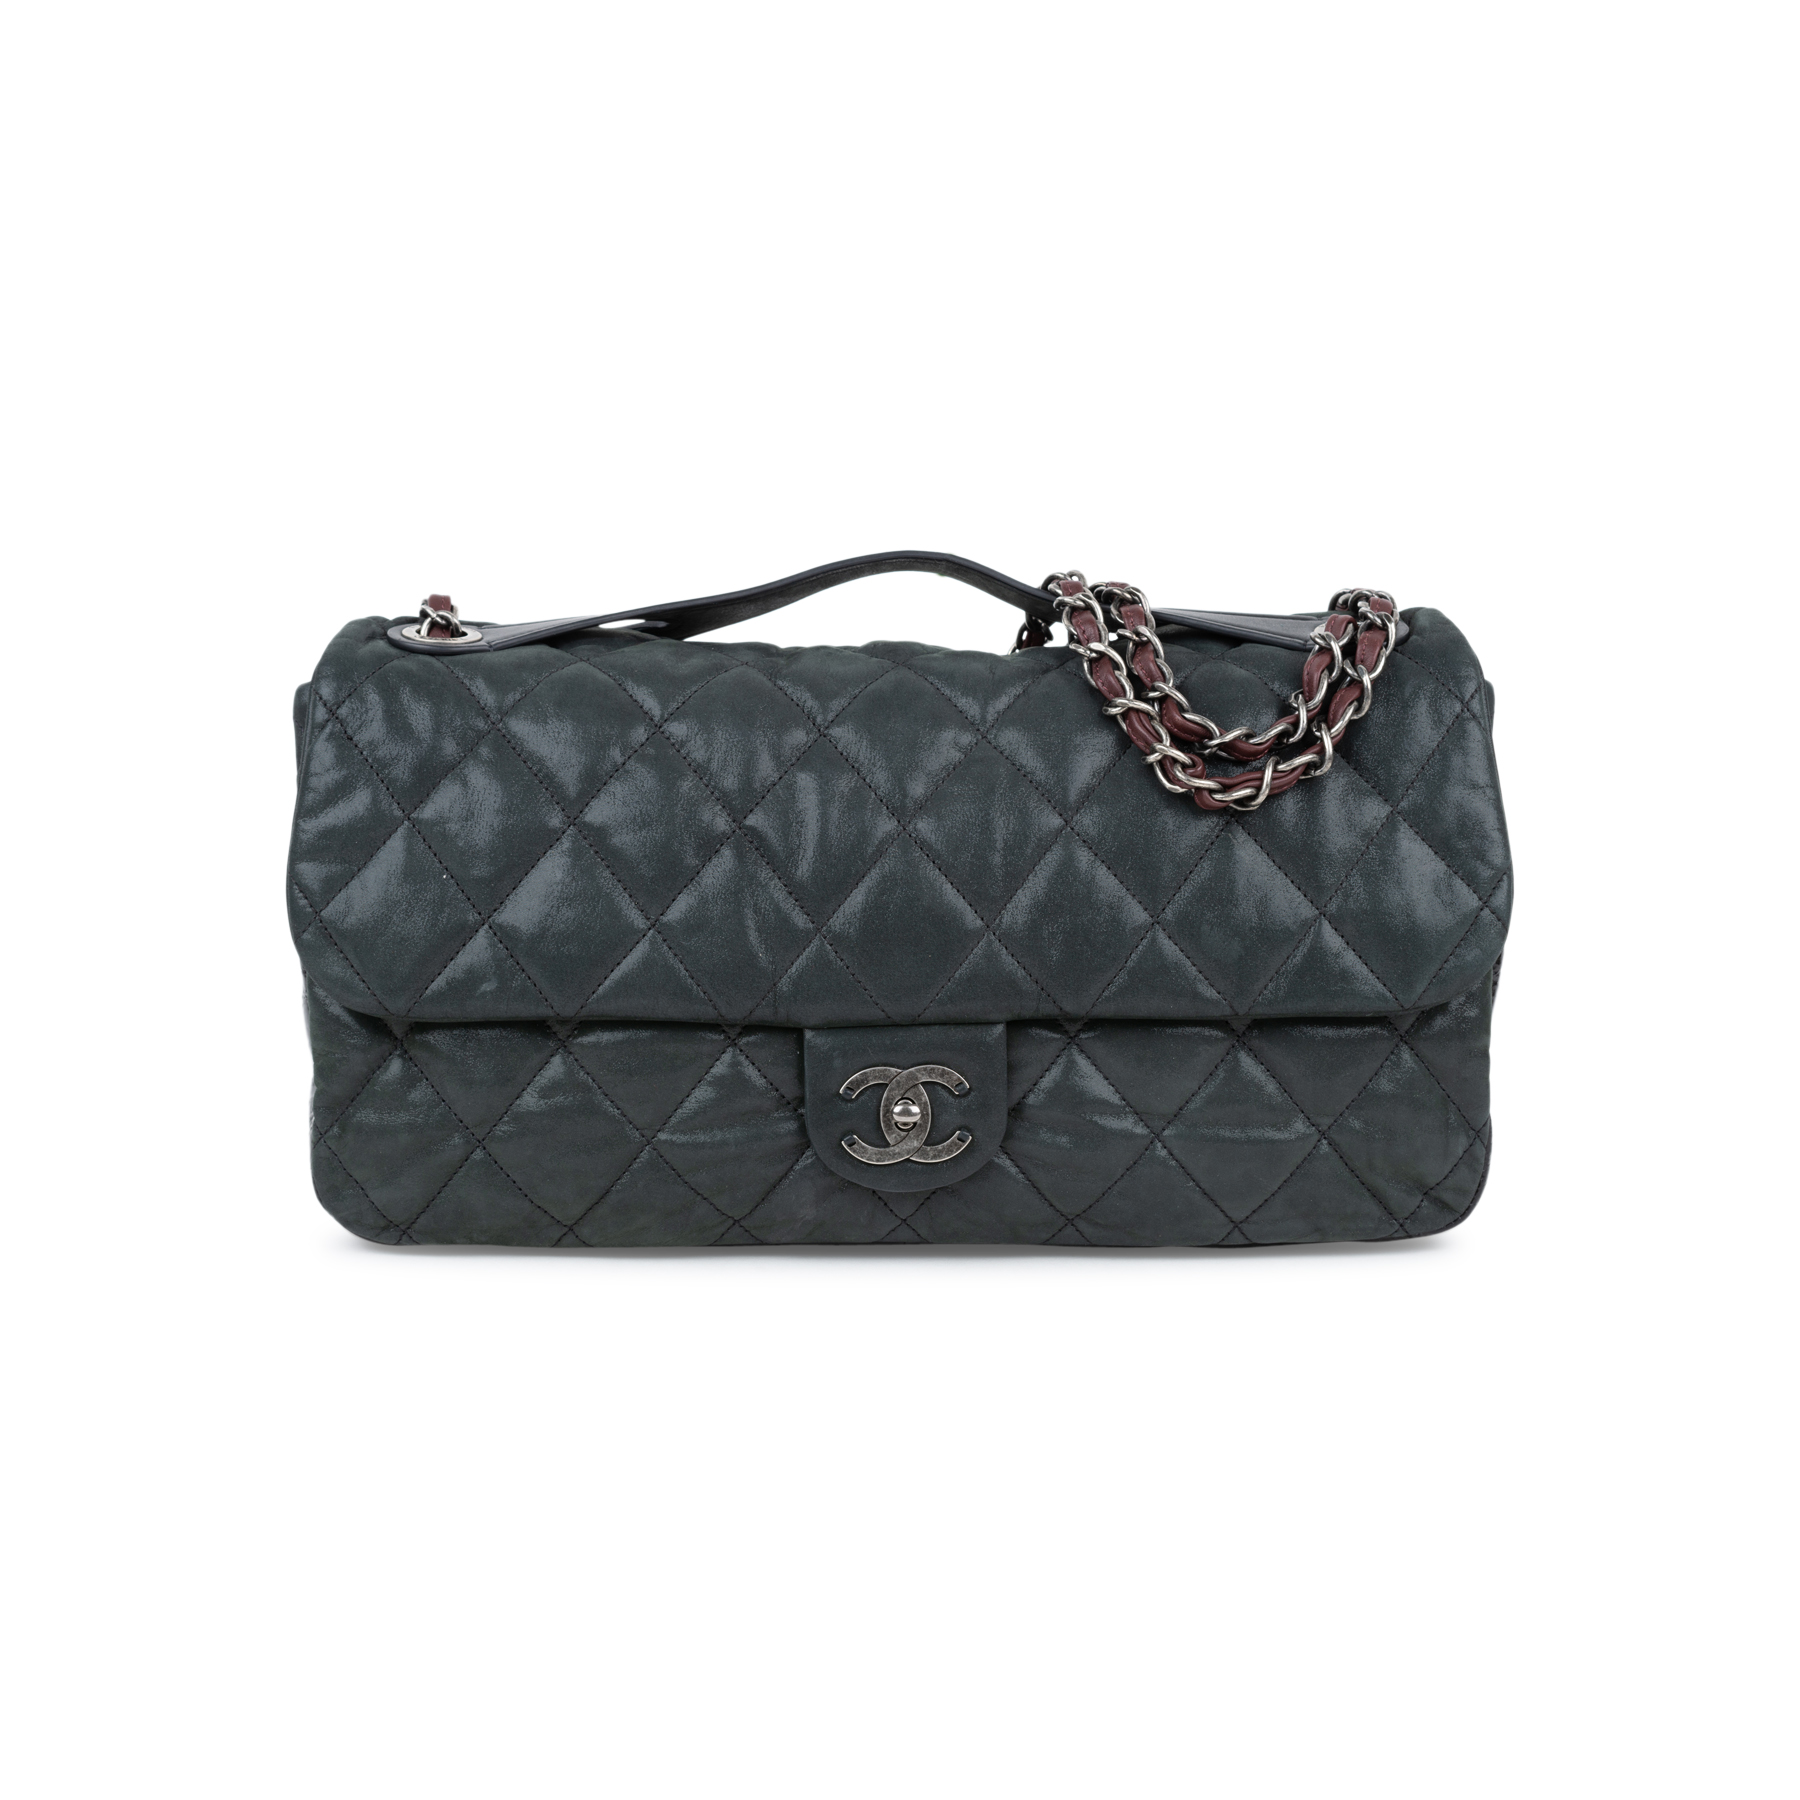 96c47a446837 Authentic Second Hand Chanel In The Mix Jumbo Flap Bag (PSS-556-00006) |  THE FIFTH COLLECTION